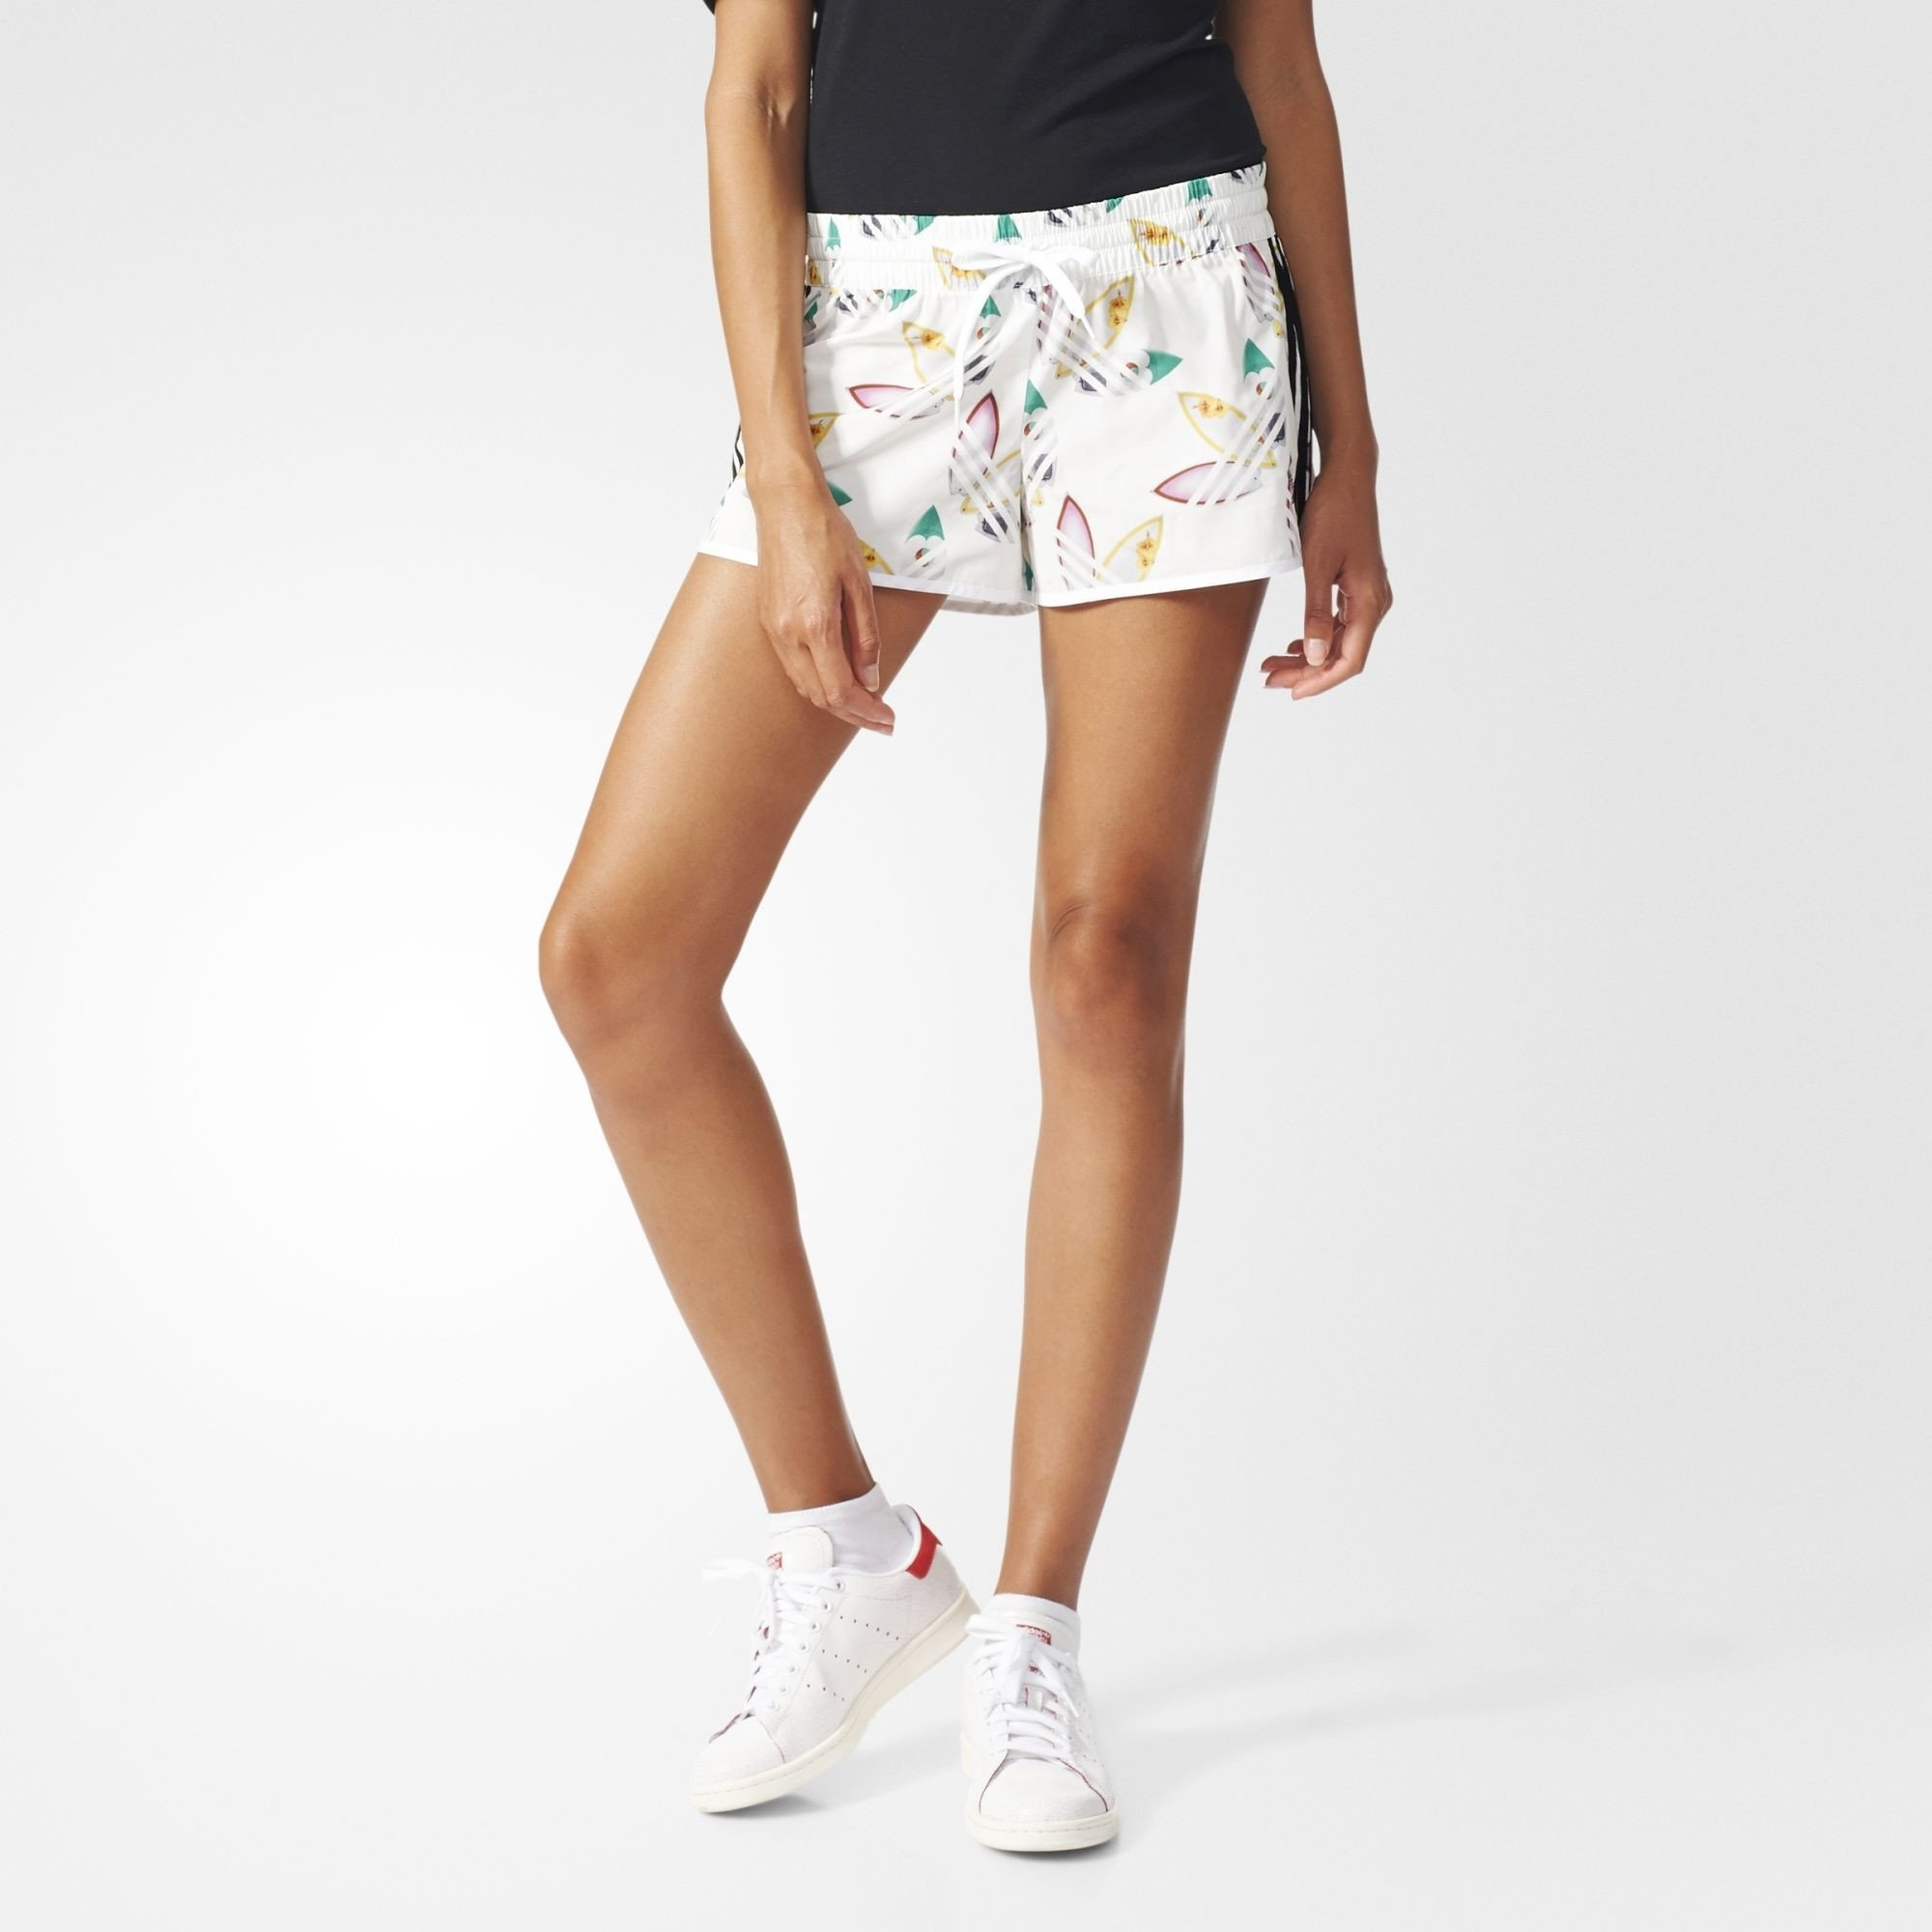 3b852d07f2 adidas x Pharrell Williams Womens Trefoil Surf Shorts | AO3162. All sizes  listed are UK. See sizing tab below for conversions.